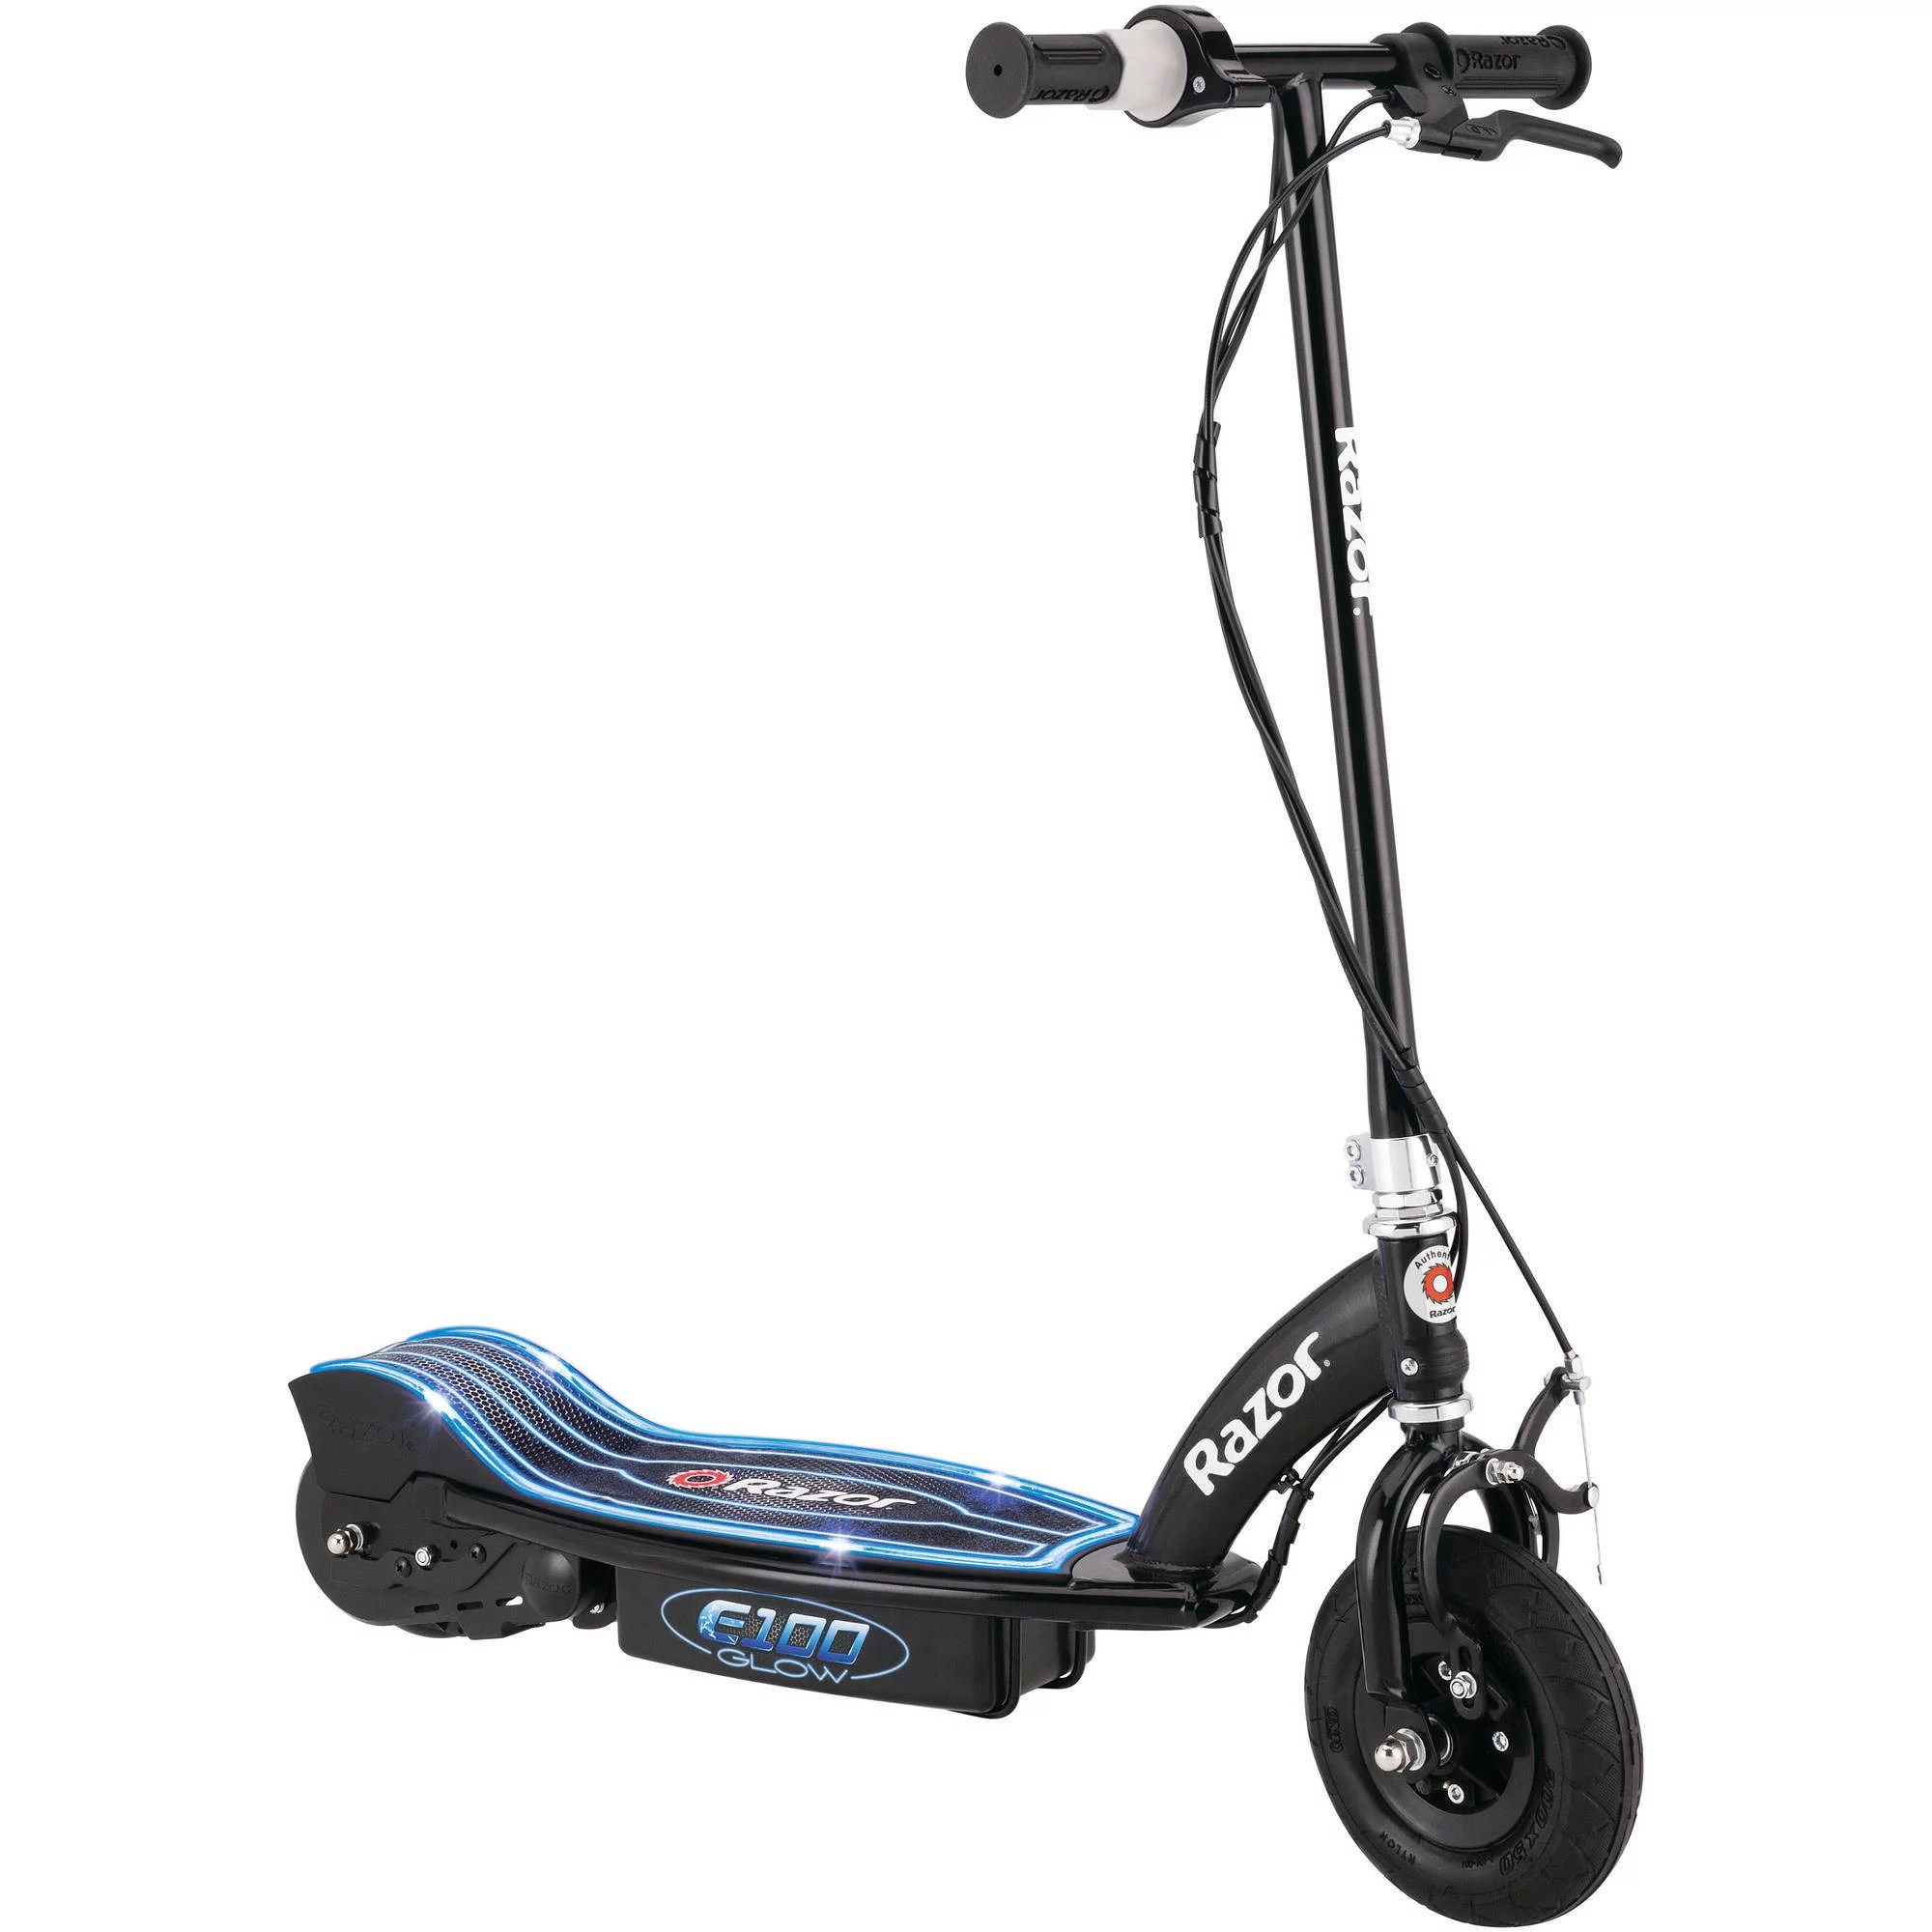 small resolution of walmart for product image razor e100 electric powered glow electric scooter black satellite electric scooter razor wiring diagram